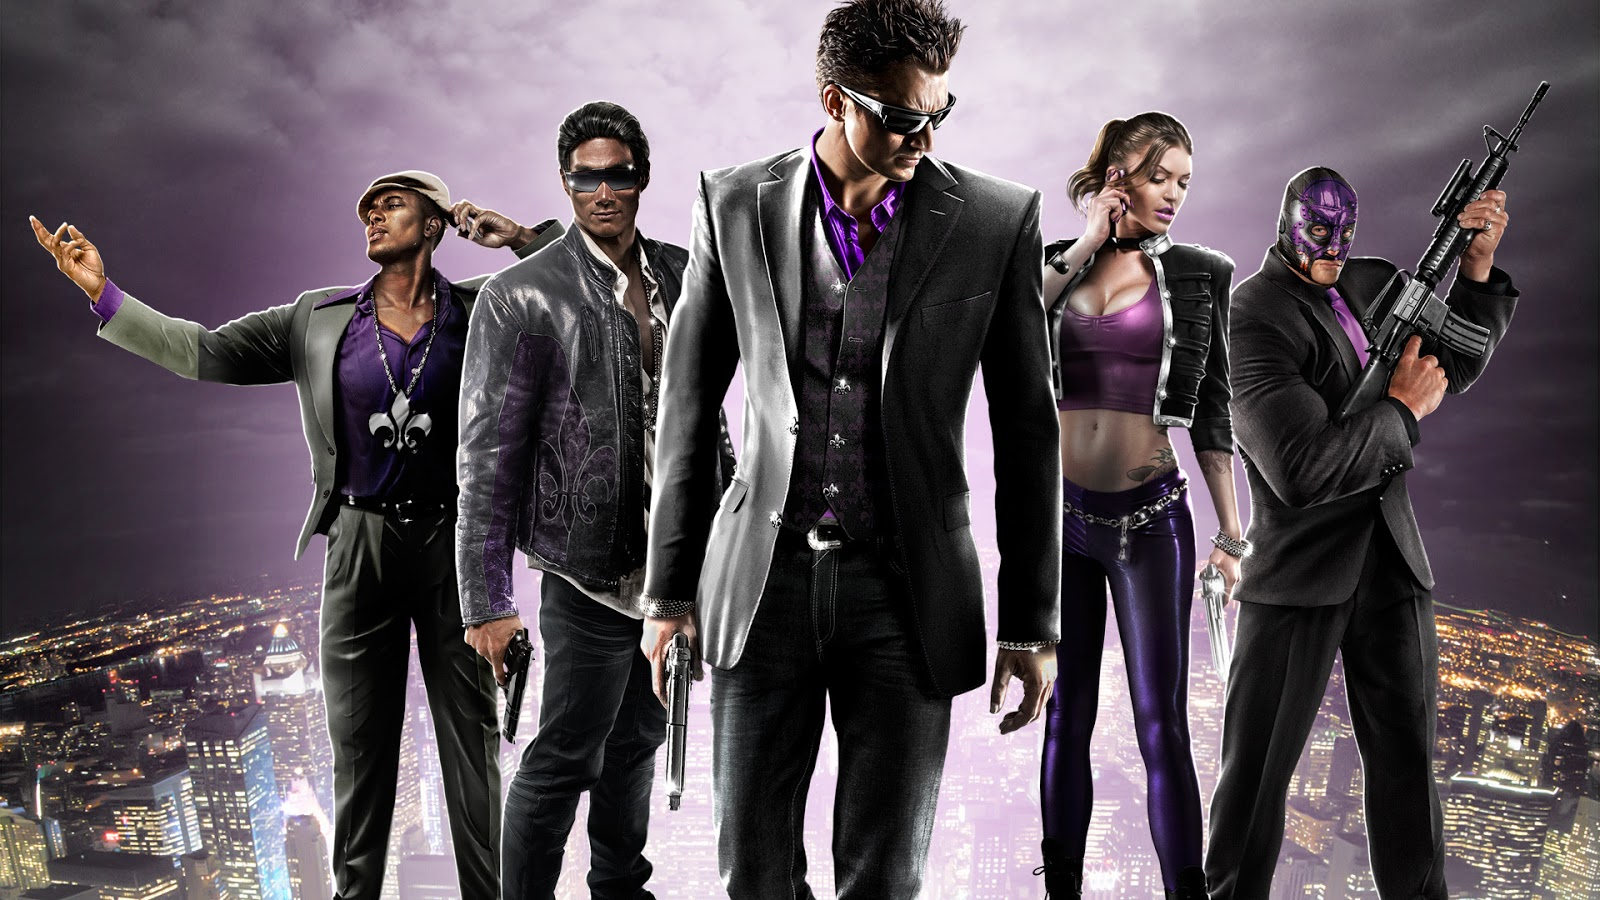 Free Download Saints Row 4 Hd Wallpapers Walls720 1600x900